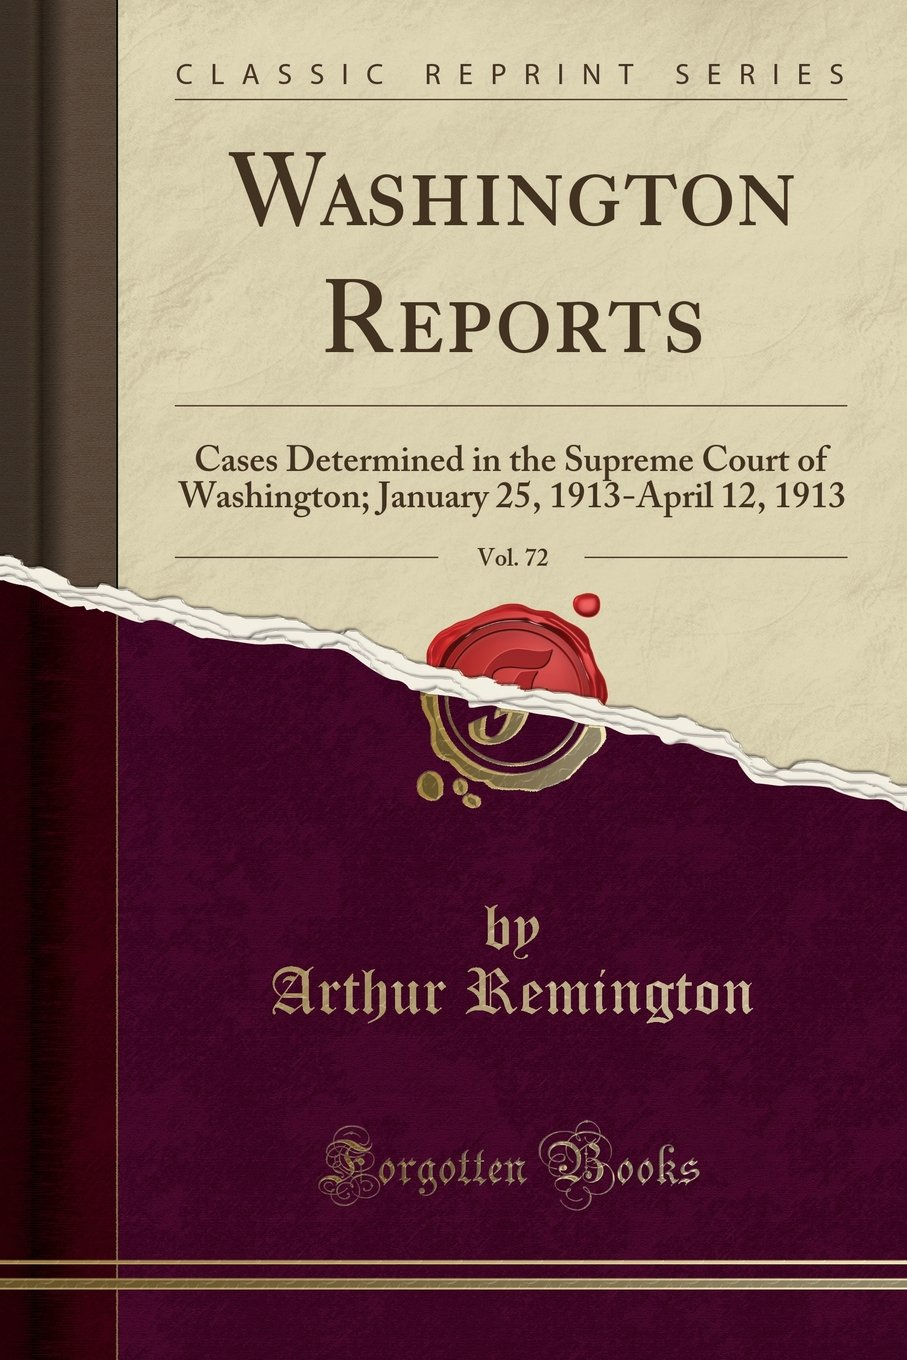 Washington Reports, Vol. 72: Cases Determined in the Supreme Court of Washington; January 25, 1913-April 12, 1913 (Classic Reprint) ebook